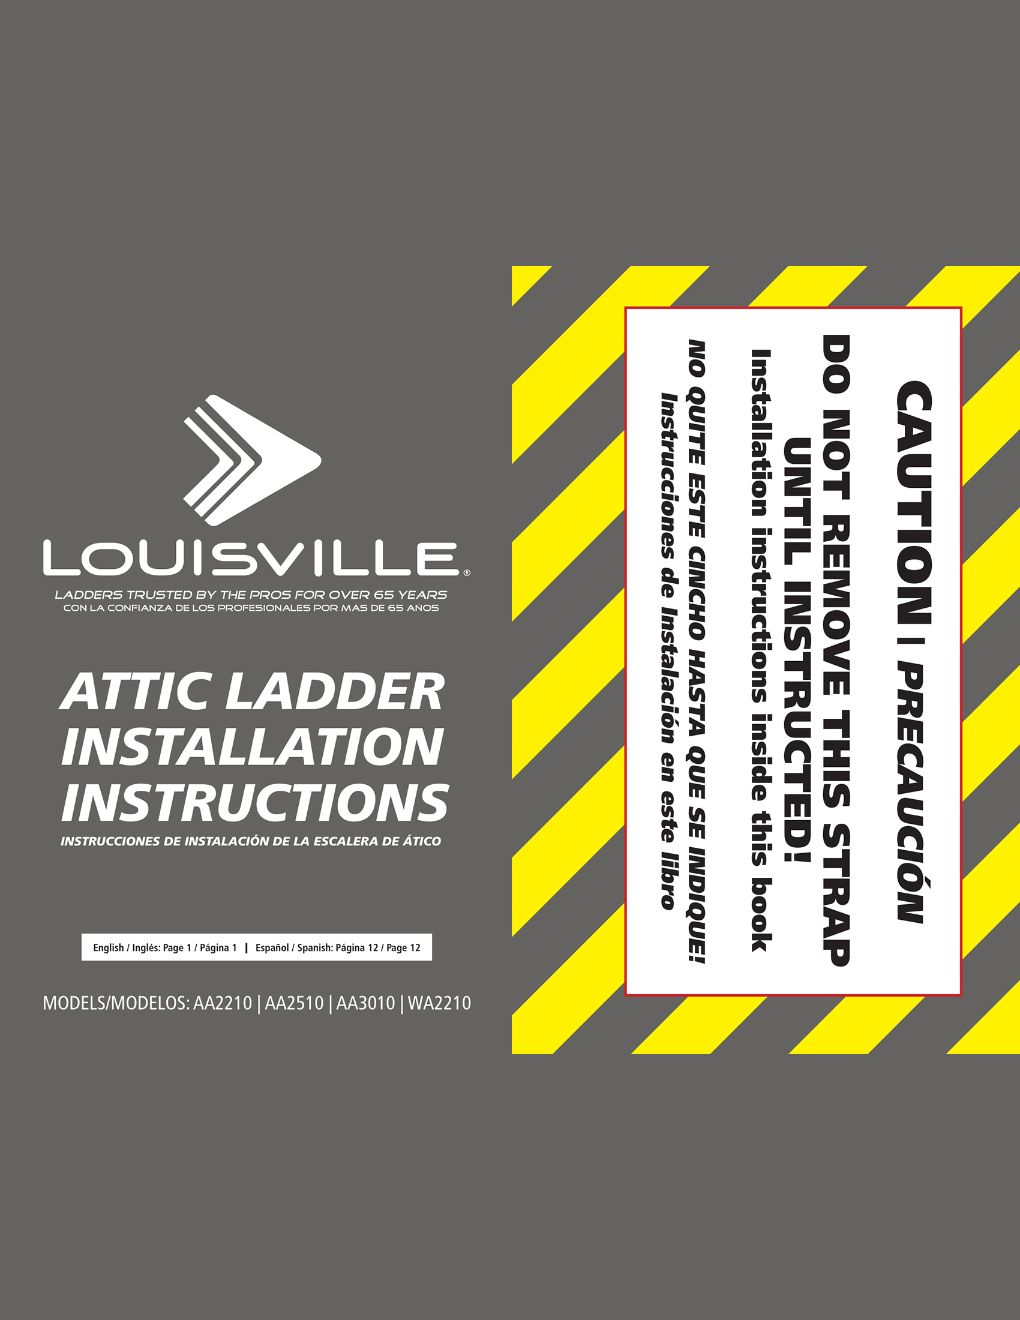 AA2210 and AA2510 Attic Ladders Installation Instructions Marketing Material Image